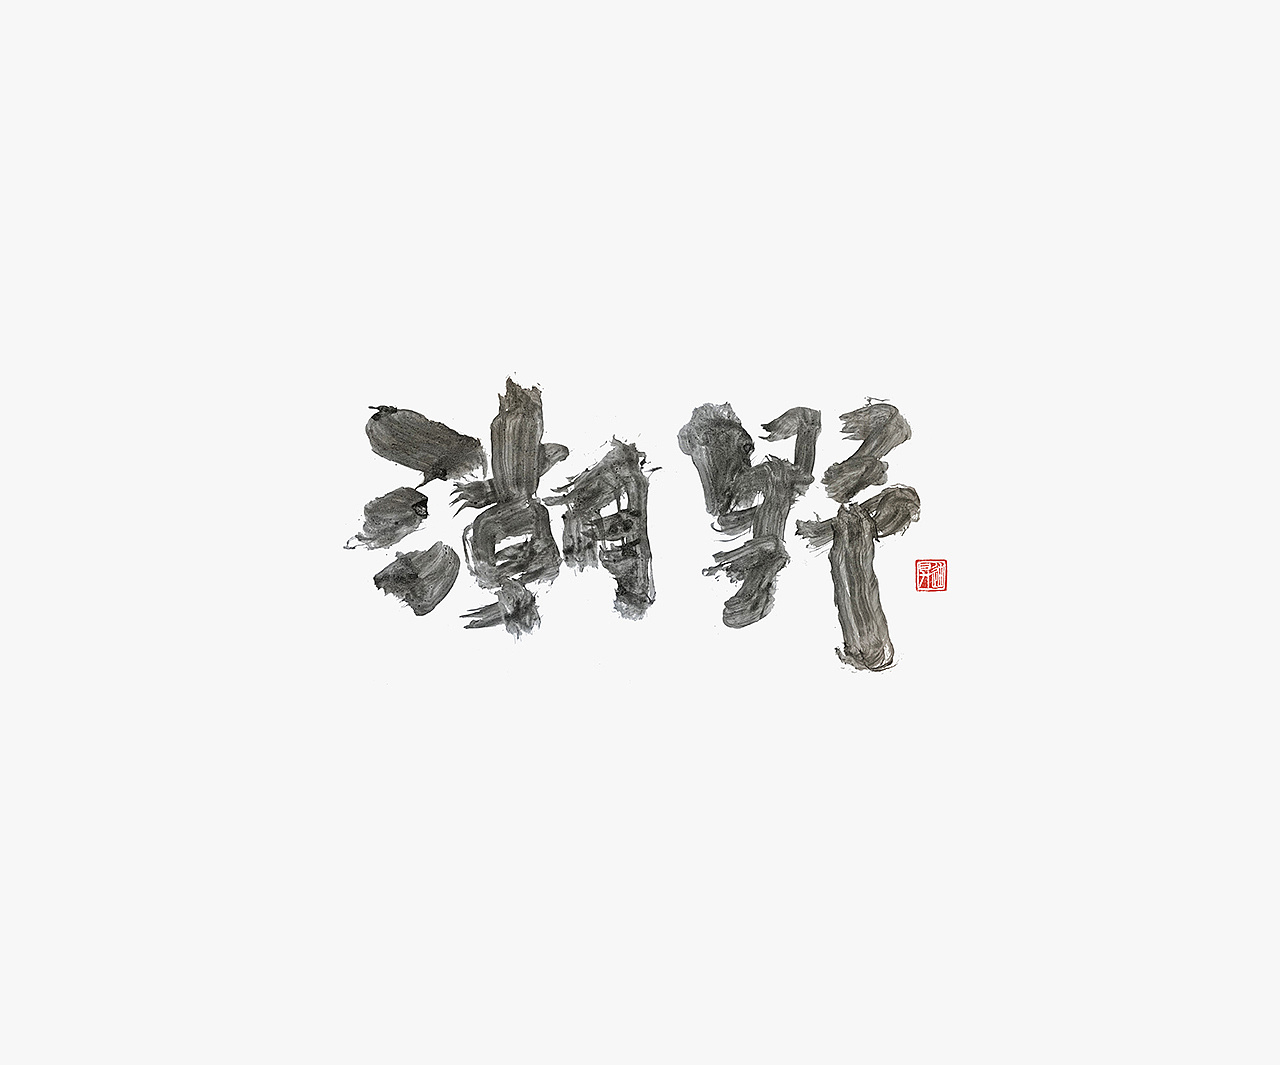 36P Chinese traditional calligraphy brush calligraphy font style appreciation #.1441